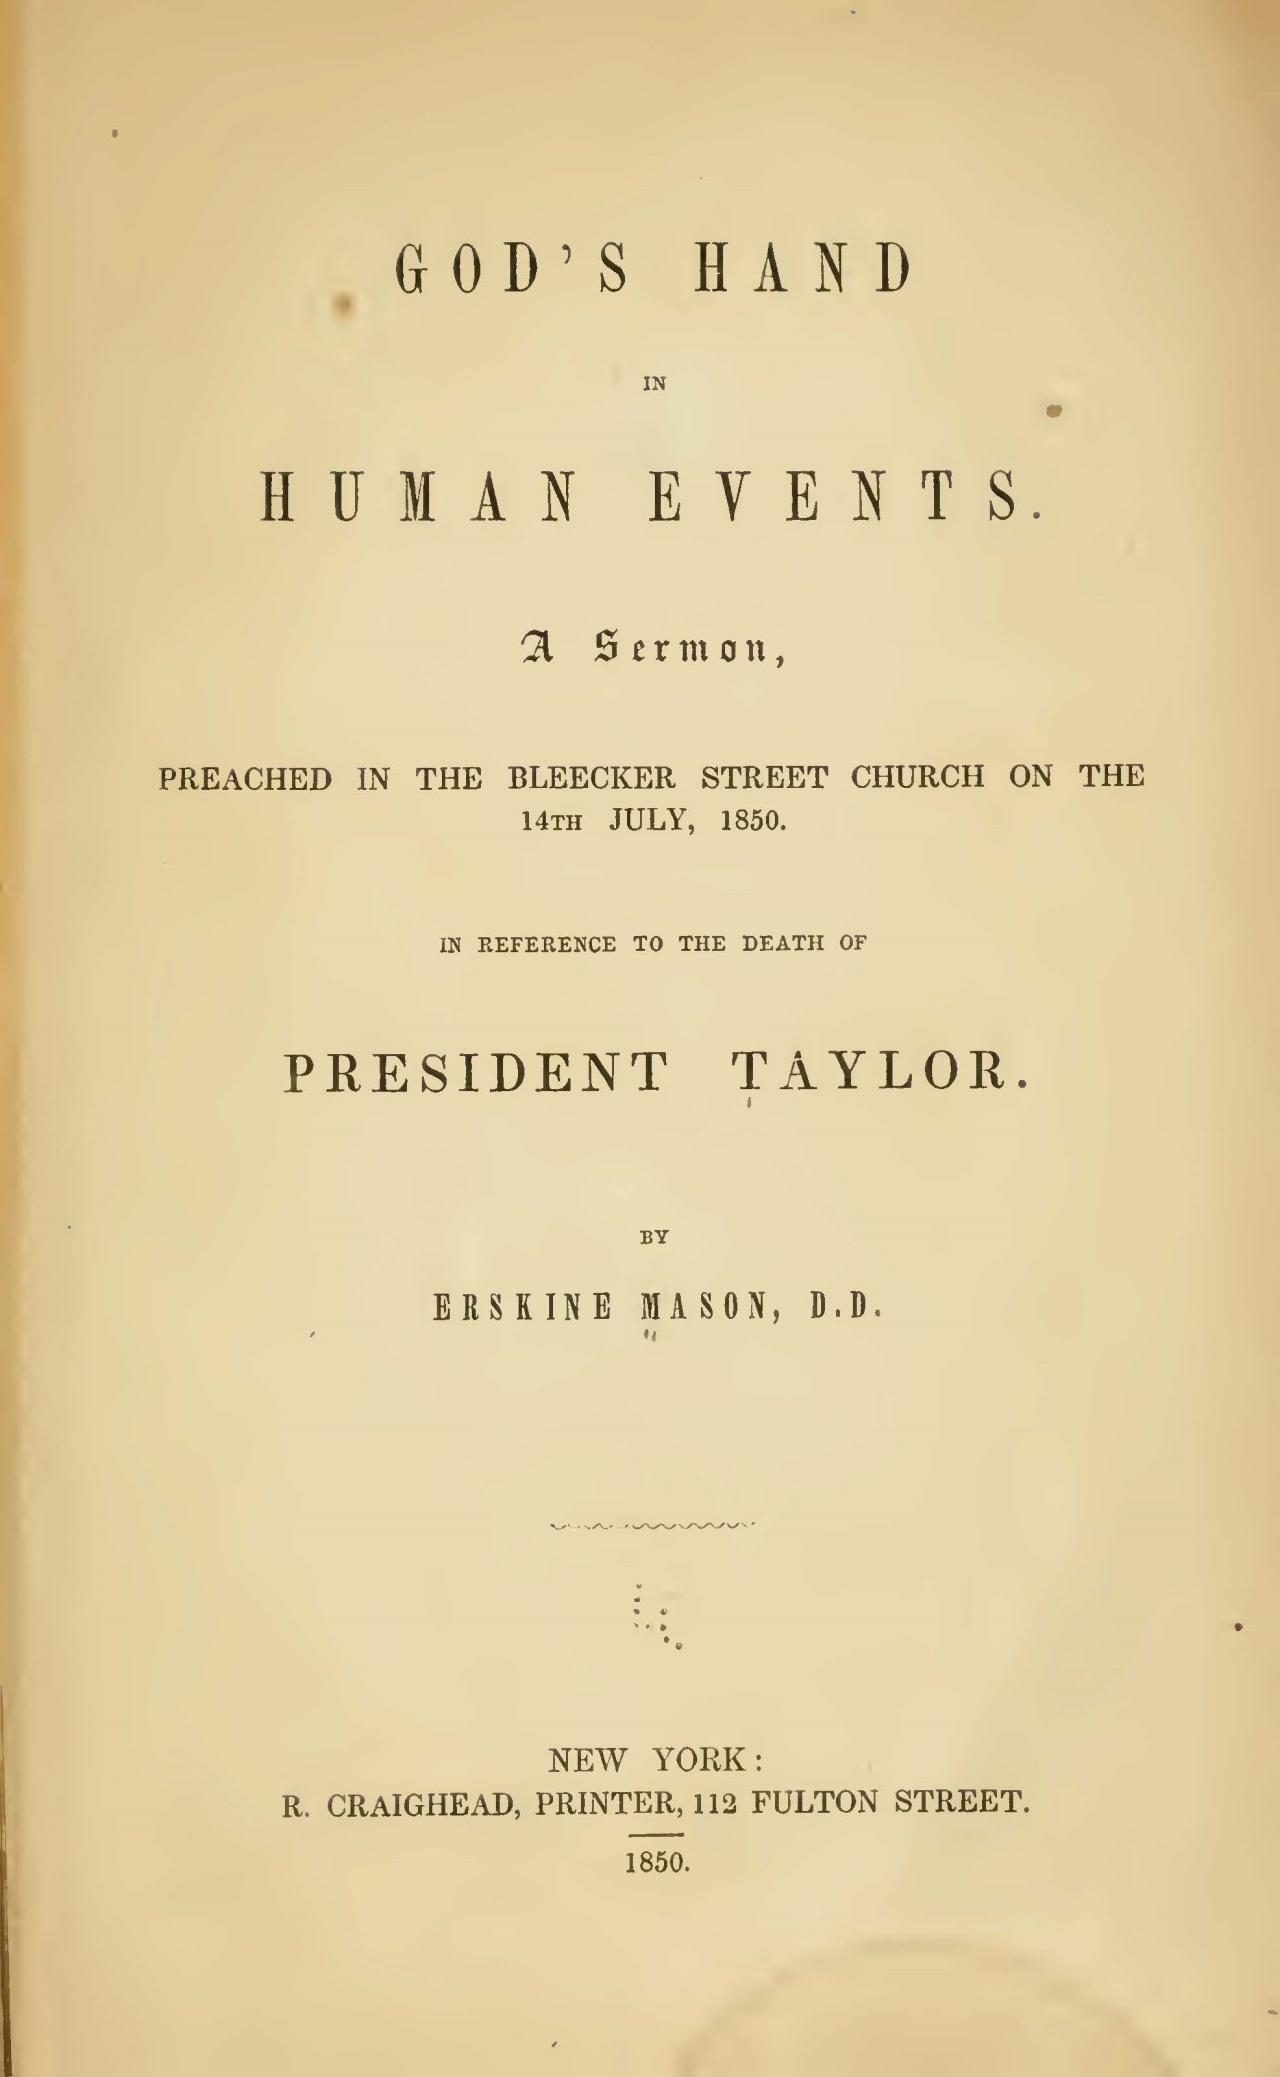 Mason, Sr., Erskine, God's Hand in Human Events Title Page.jpg